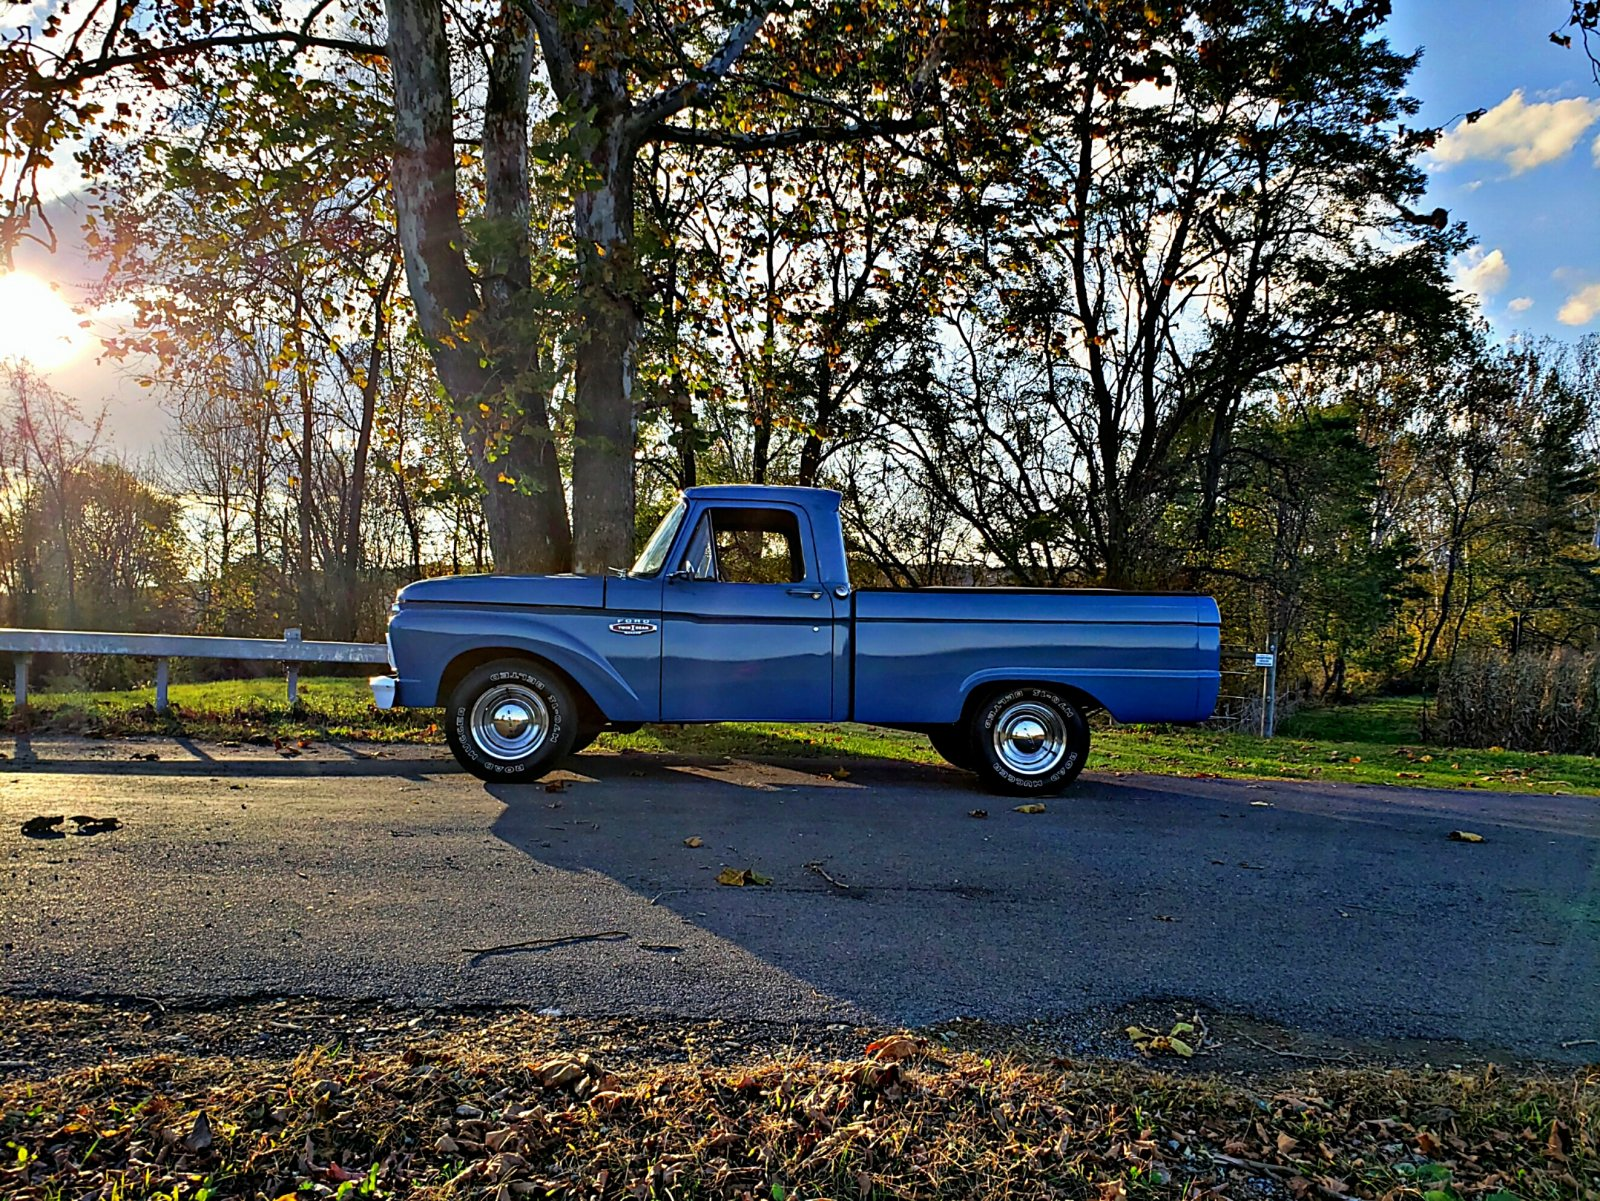 1966 Ford F100 Story About Truck Owner Chris F. 5.jpeg